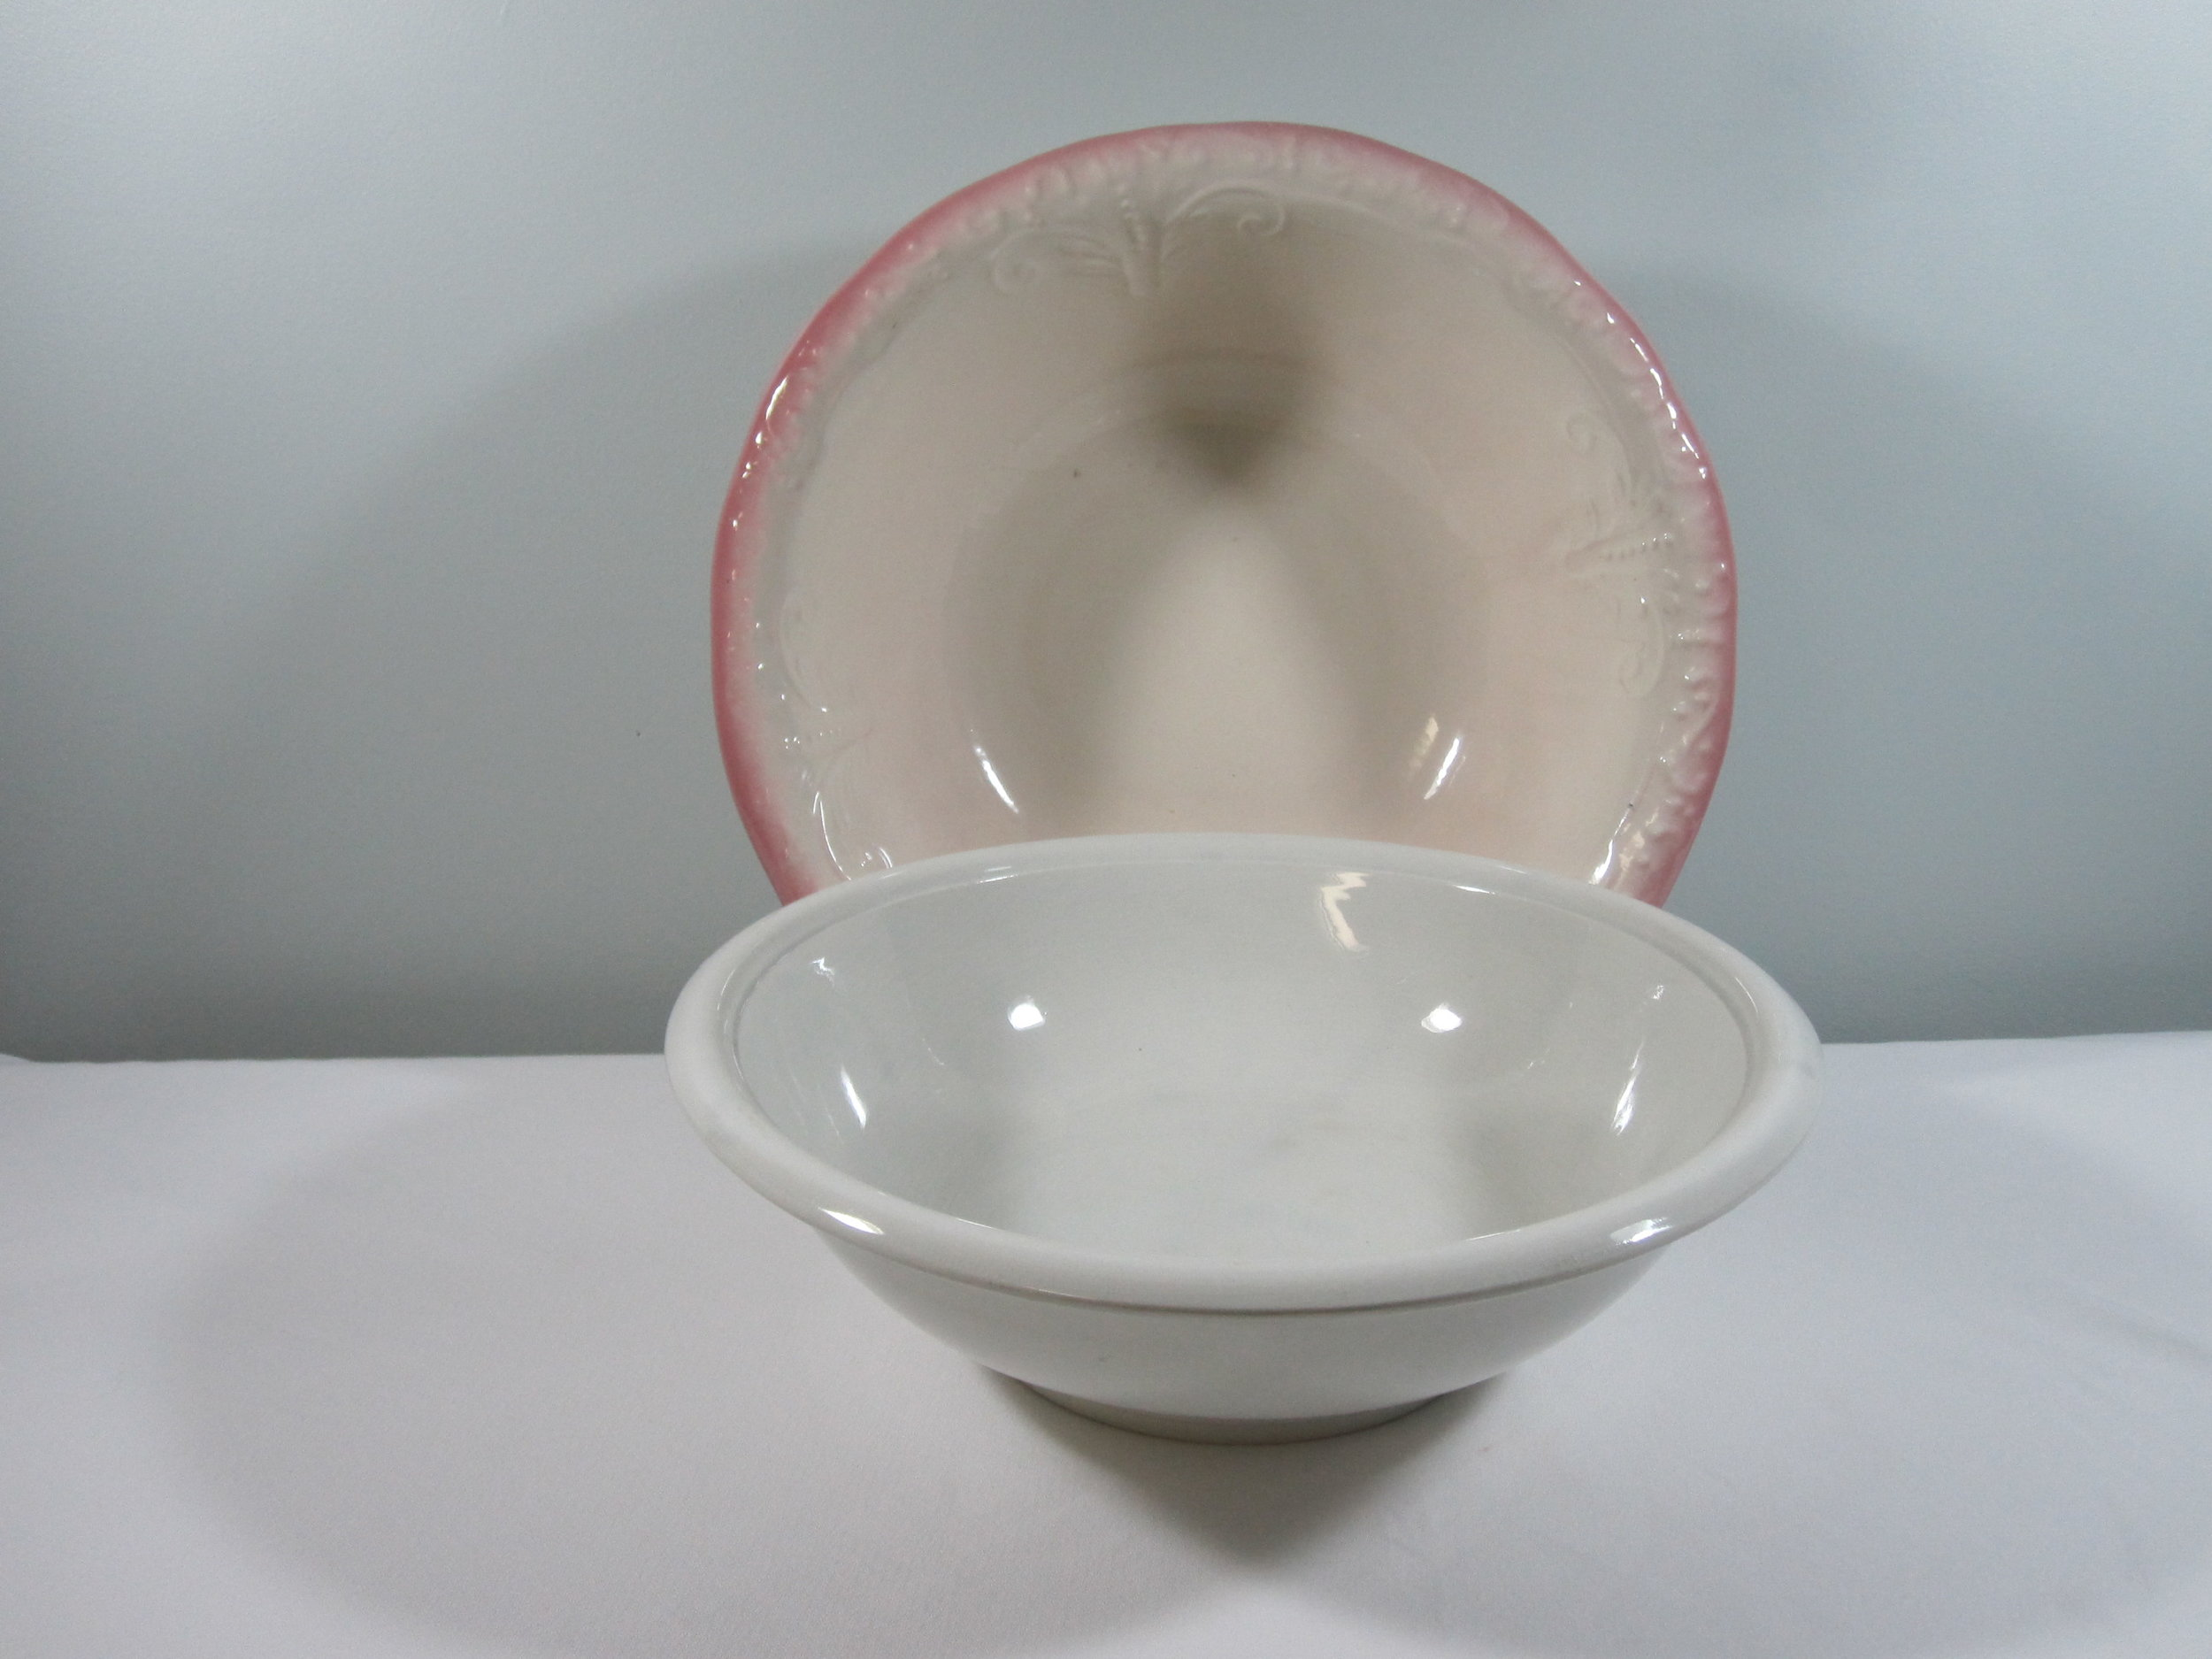 Ceramic Bowls - Description ~ large bowls that can hold a variety of things!Quantity ~ 2Price ~ $8